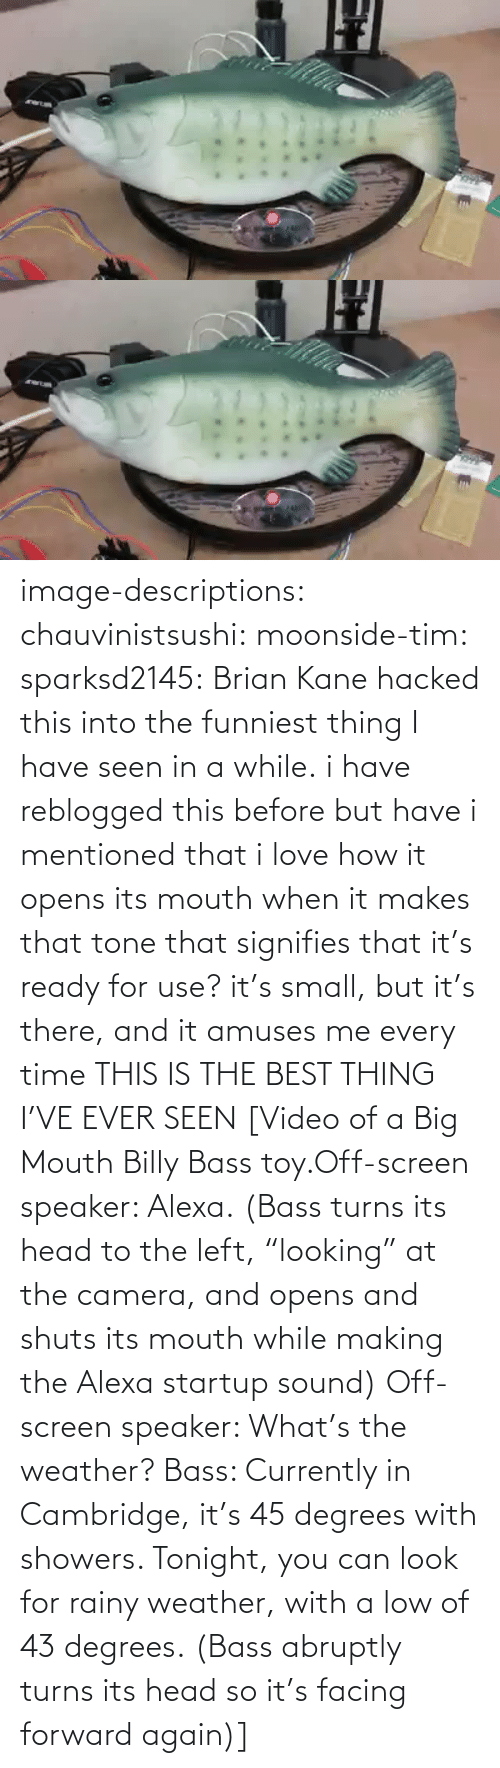 "thing: image-descriptions:  chauvinistsushi:  moonside-tim:  sparksd2145:  Brian Kane hacked this into the funniest thing I have seen in a while.  i have reblogged this before but have i mentioned that i love how it opens its mouth when it makes that tone that signifies that it's ready for use? it's small, but it's there, and it amuses me every time  THIS IS THE BEST THING I'VE EVER SEEN  [Video of a Big Mouth Billy Bass toy.Off-screen speaker: Alexa. (Bass turns its head to the left, ""looking"" at the camera, and opens and shuts its mouth while making the Alexa startup sound)  Off-screen speaker: What's the weather? Bass: Currently in Cambridge, it's 45 degrees with showers. Tonight, you can look for rainy weather, with a low of 43 degrees. (Bass abruptly turns its head so it's facing forward again)]"